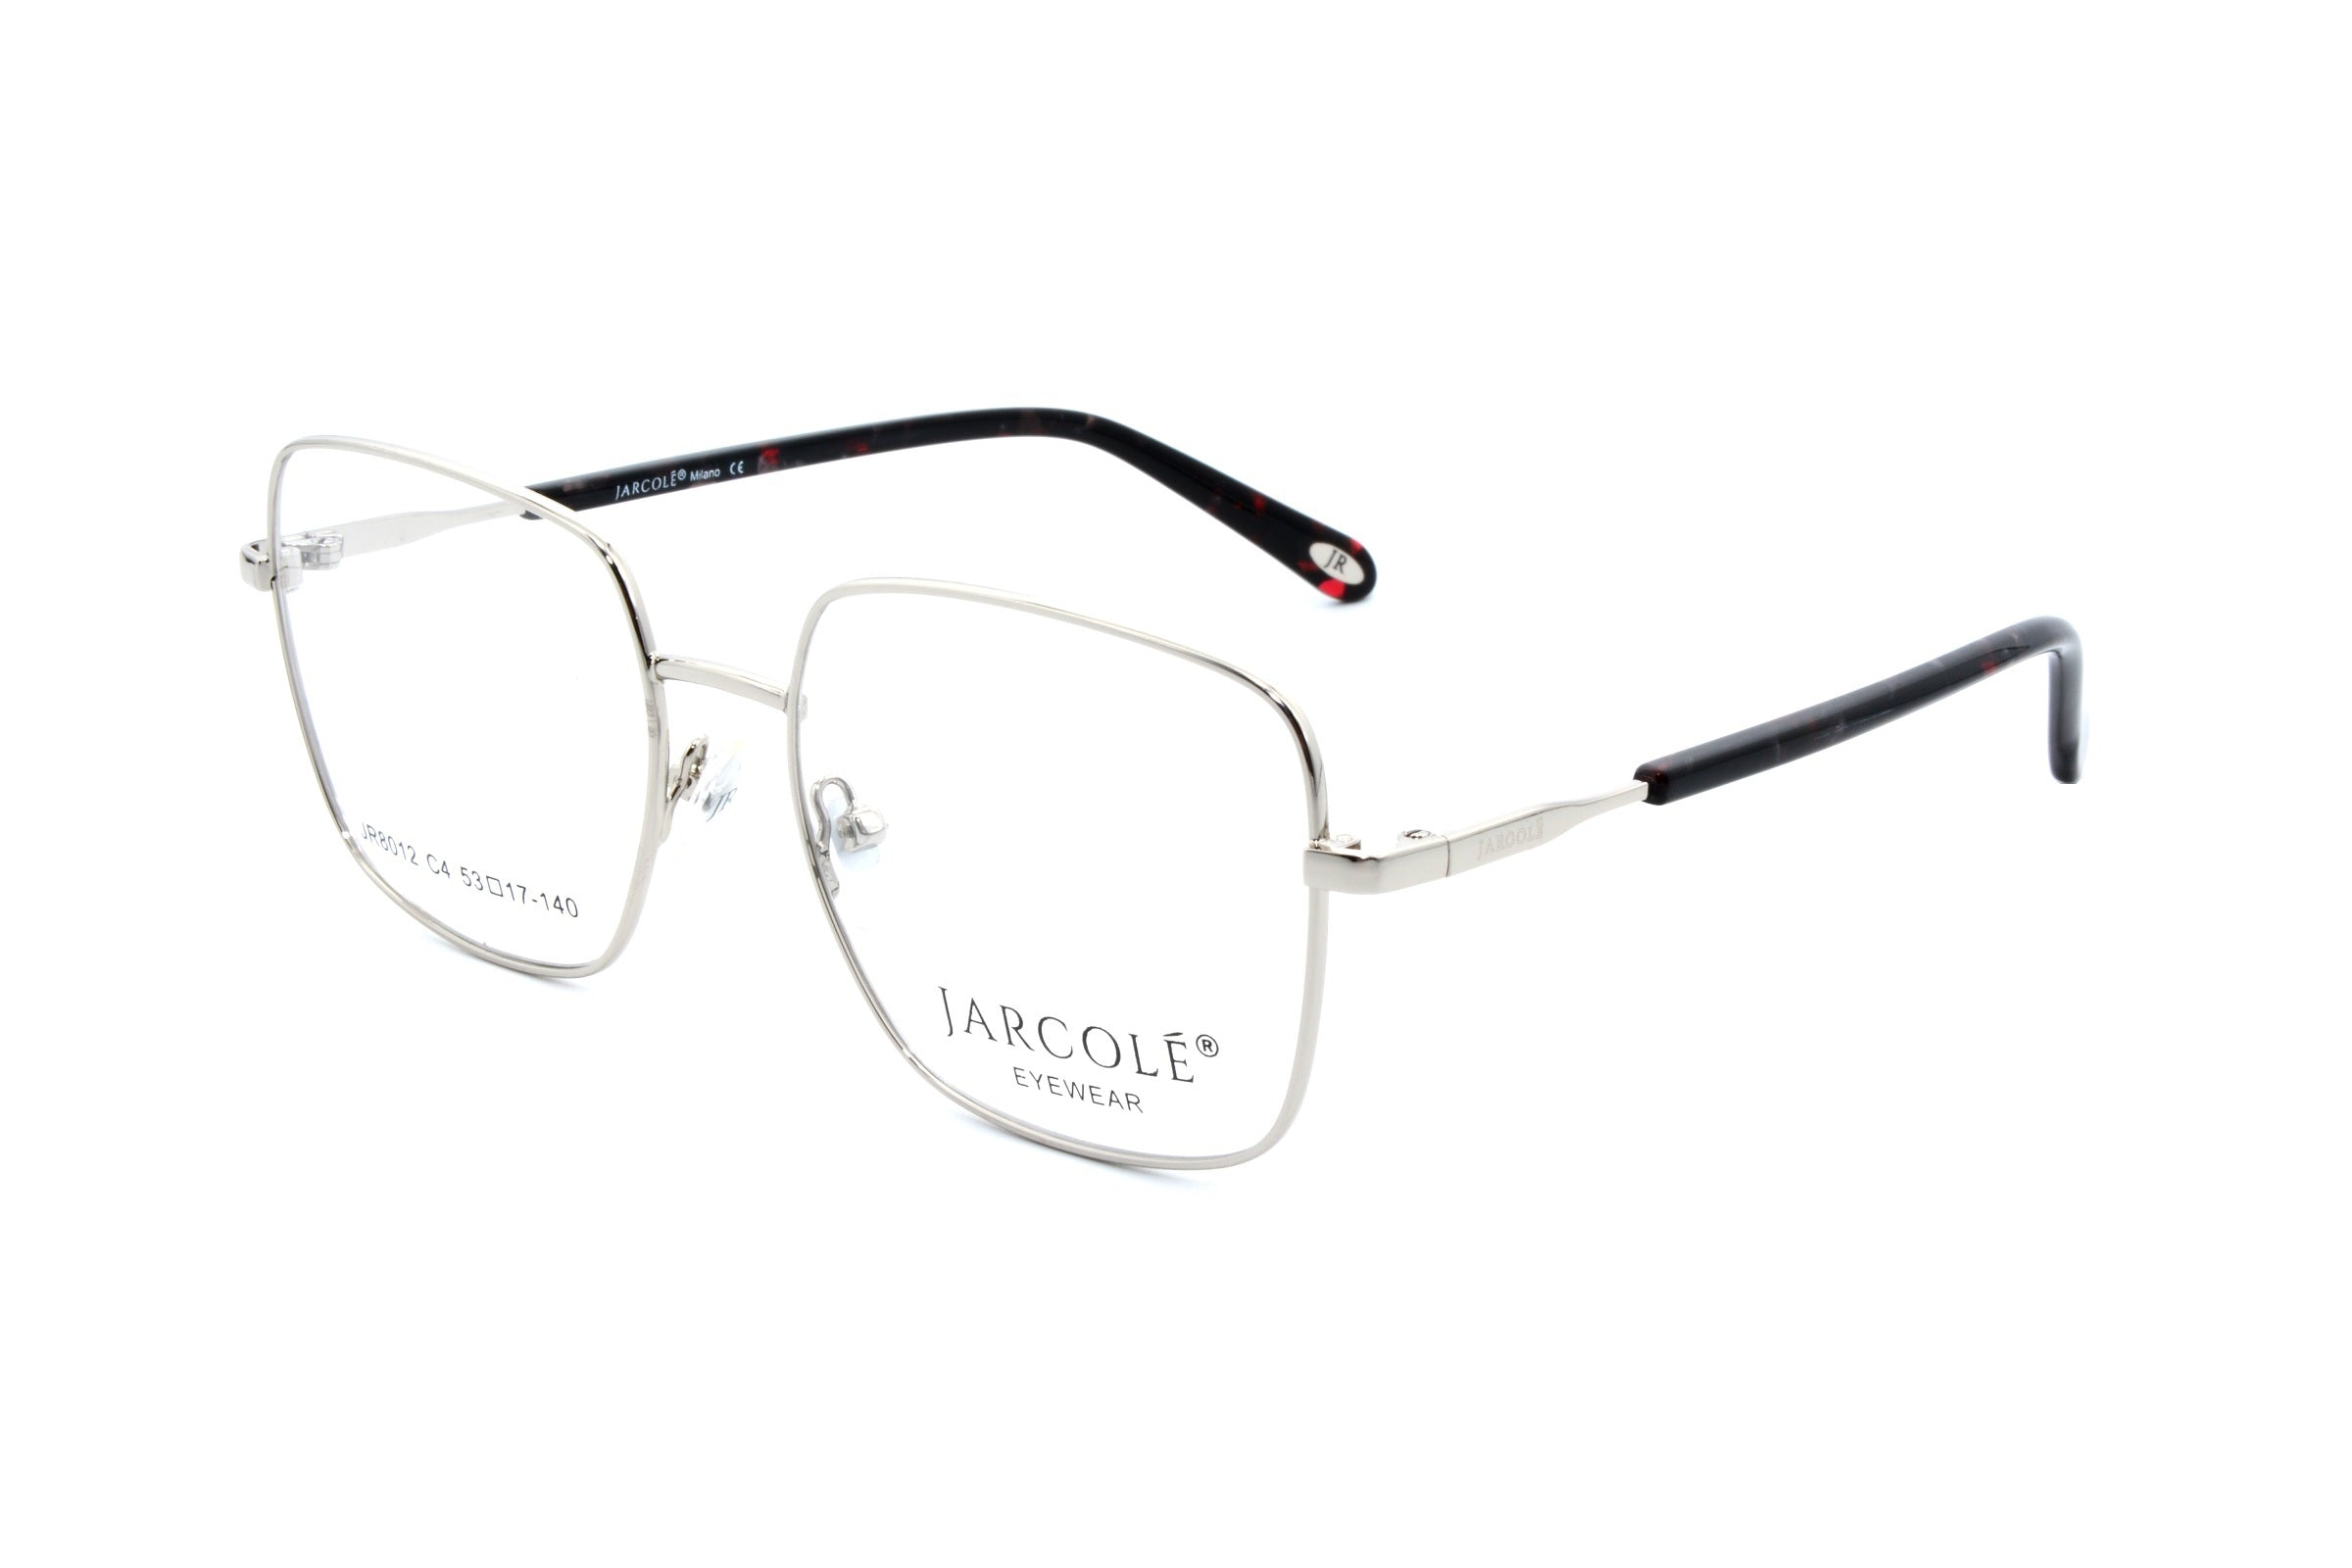 Jarcole eyewear 8012, C4 - Optics Trading